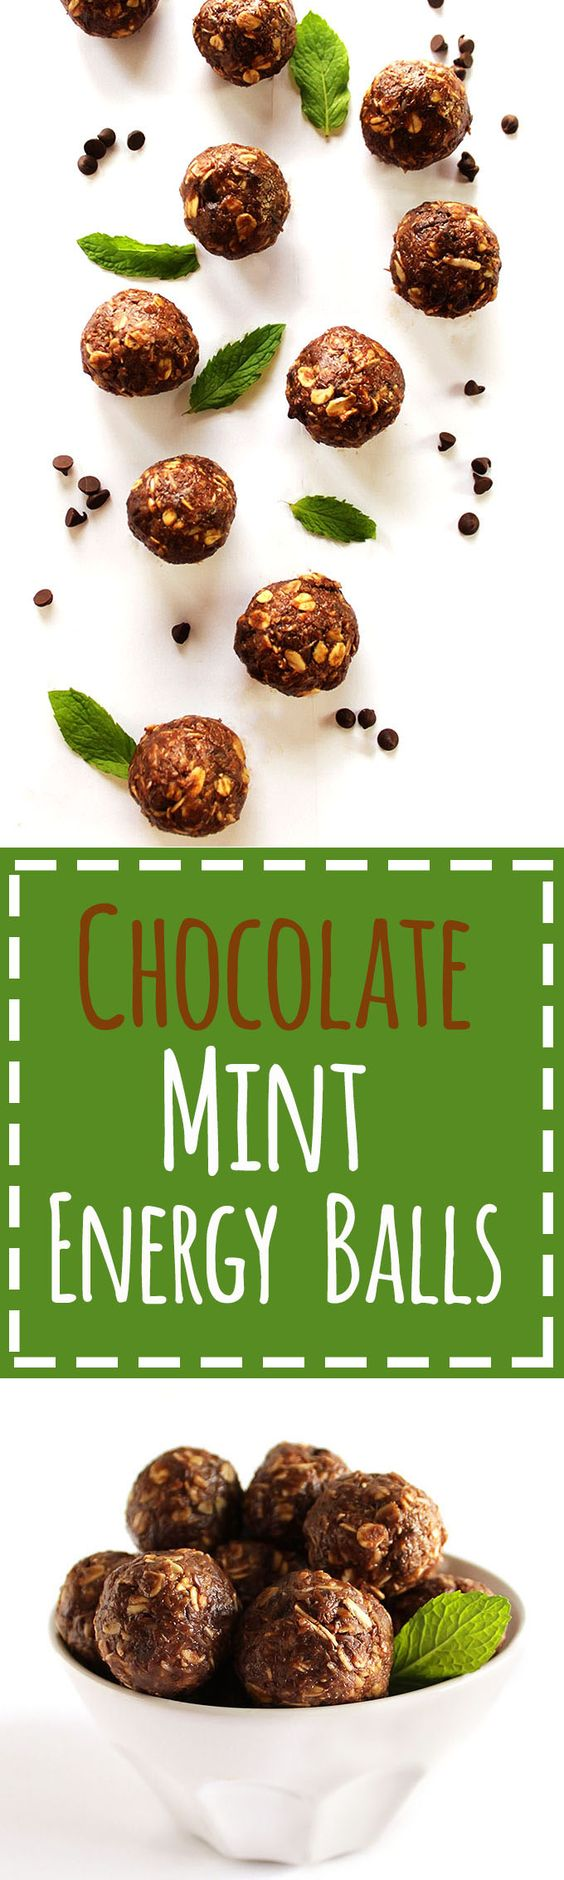 Chocolate Mint Energy Balls (V + GF) | Recipe | Pre workout snack ...